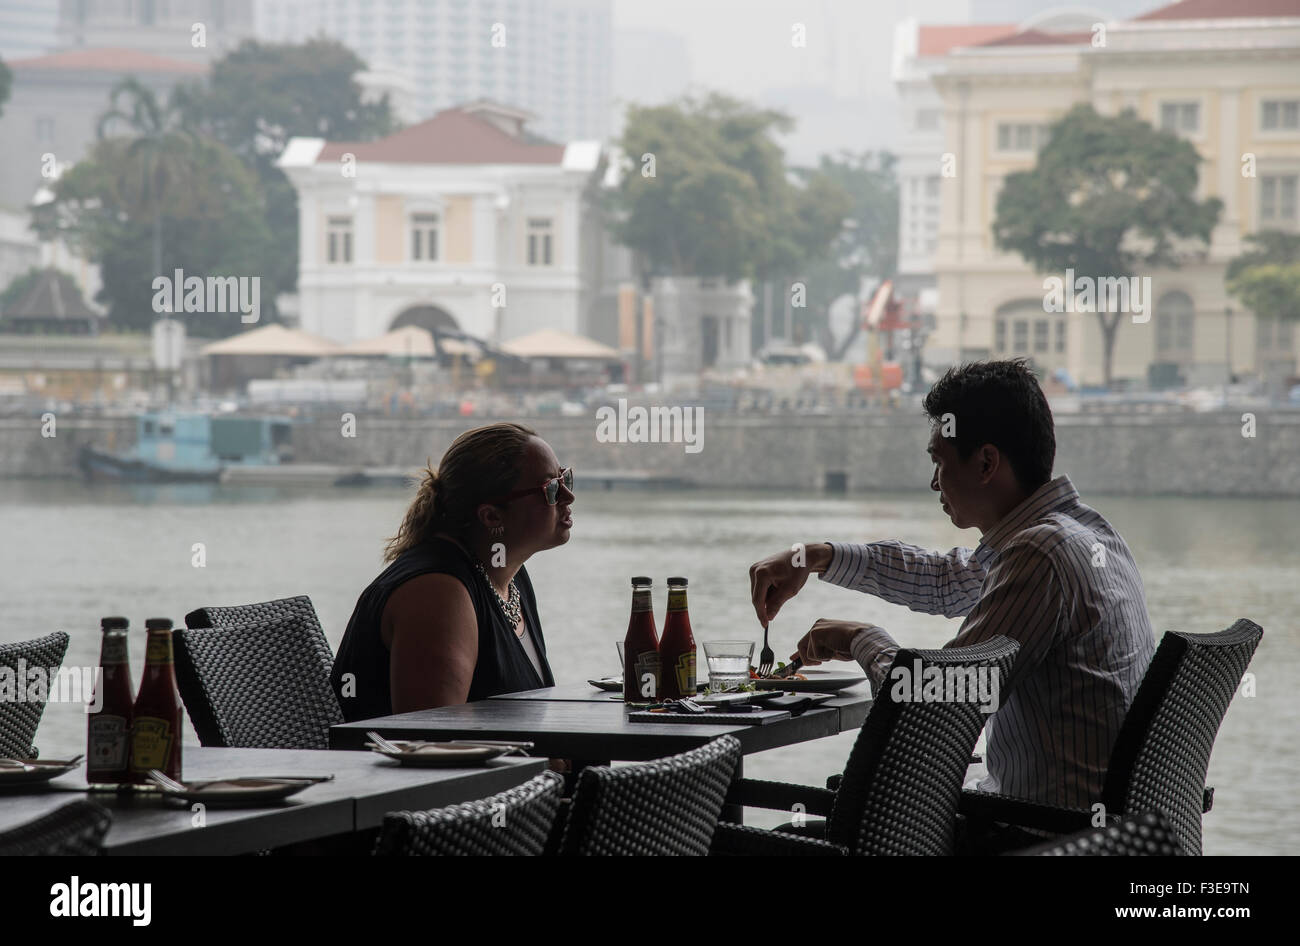 Couple have lunch outdoors under hazardous haze pollution levels of more than 200 PSI in Singapore, due to destruction - Stock Image